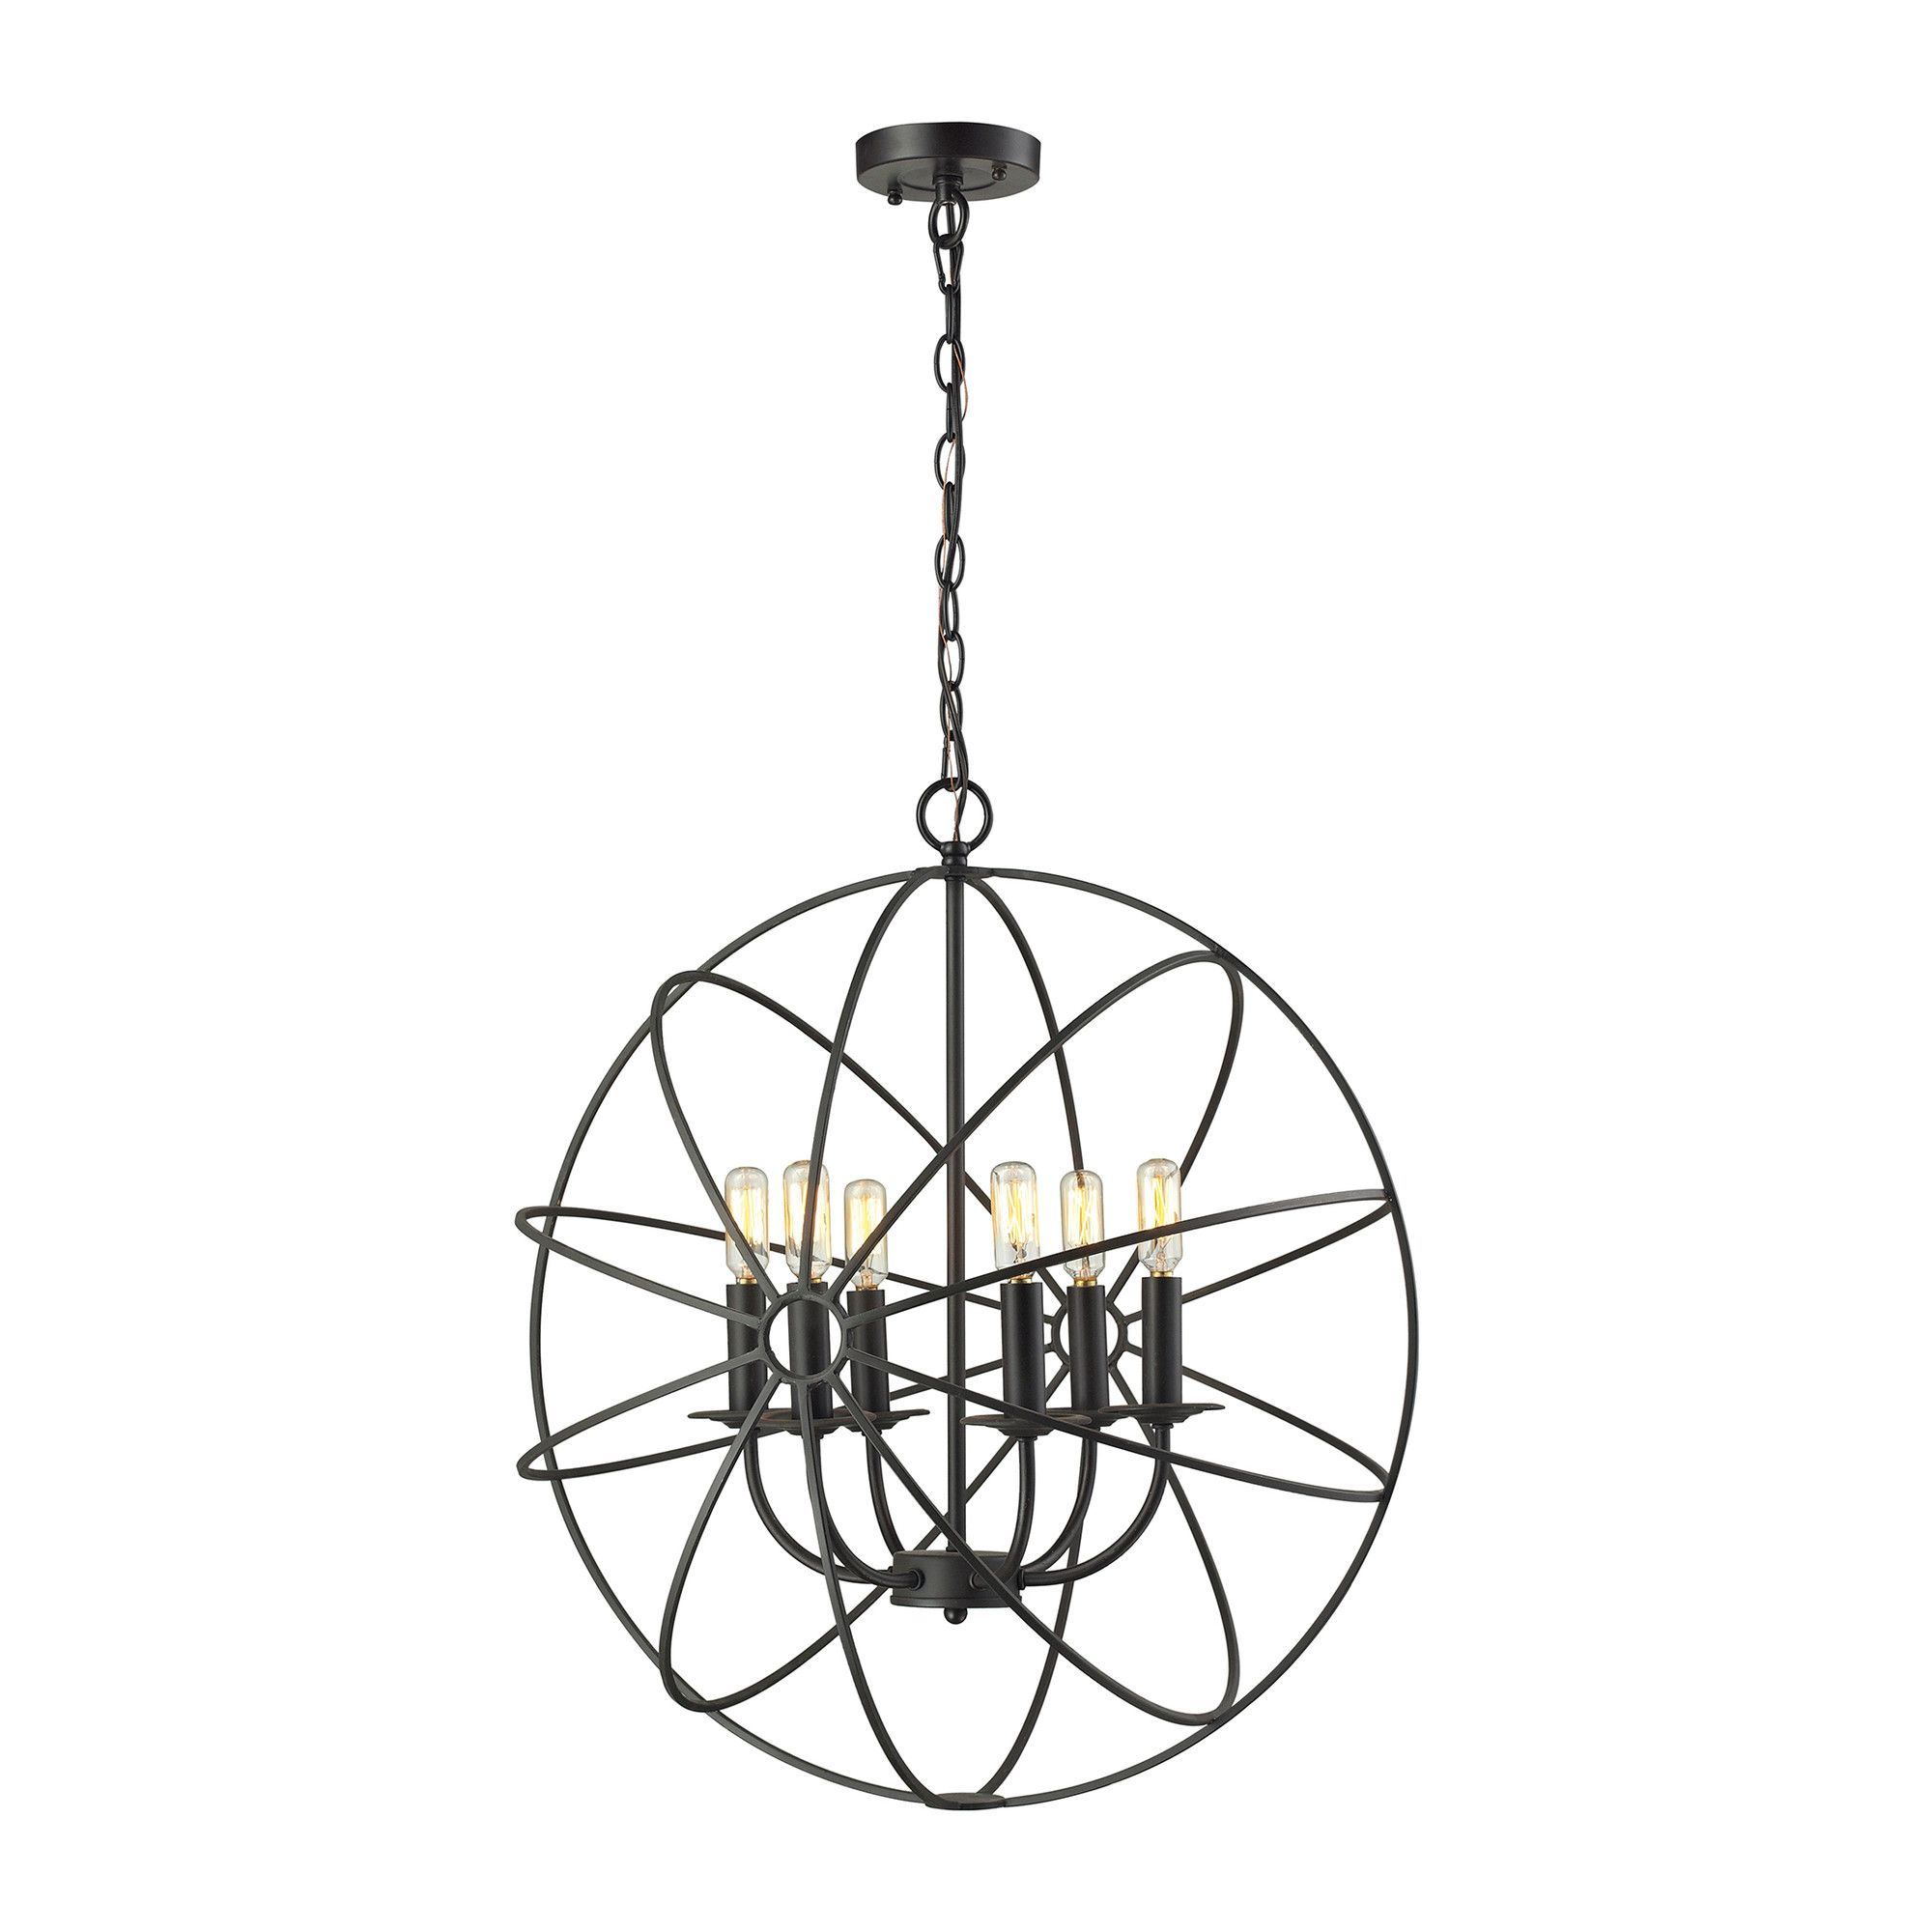 Dublin 6 Light Candle Chandelier | Products | Pinterest | Products